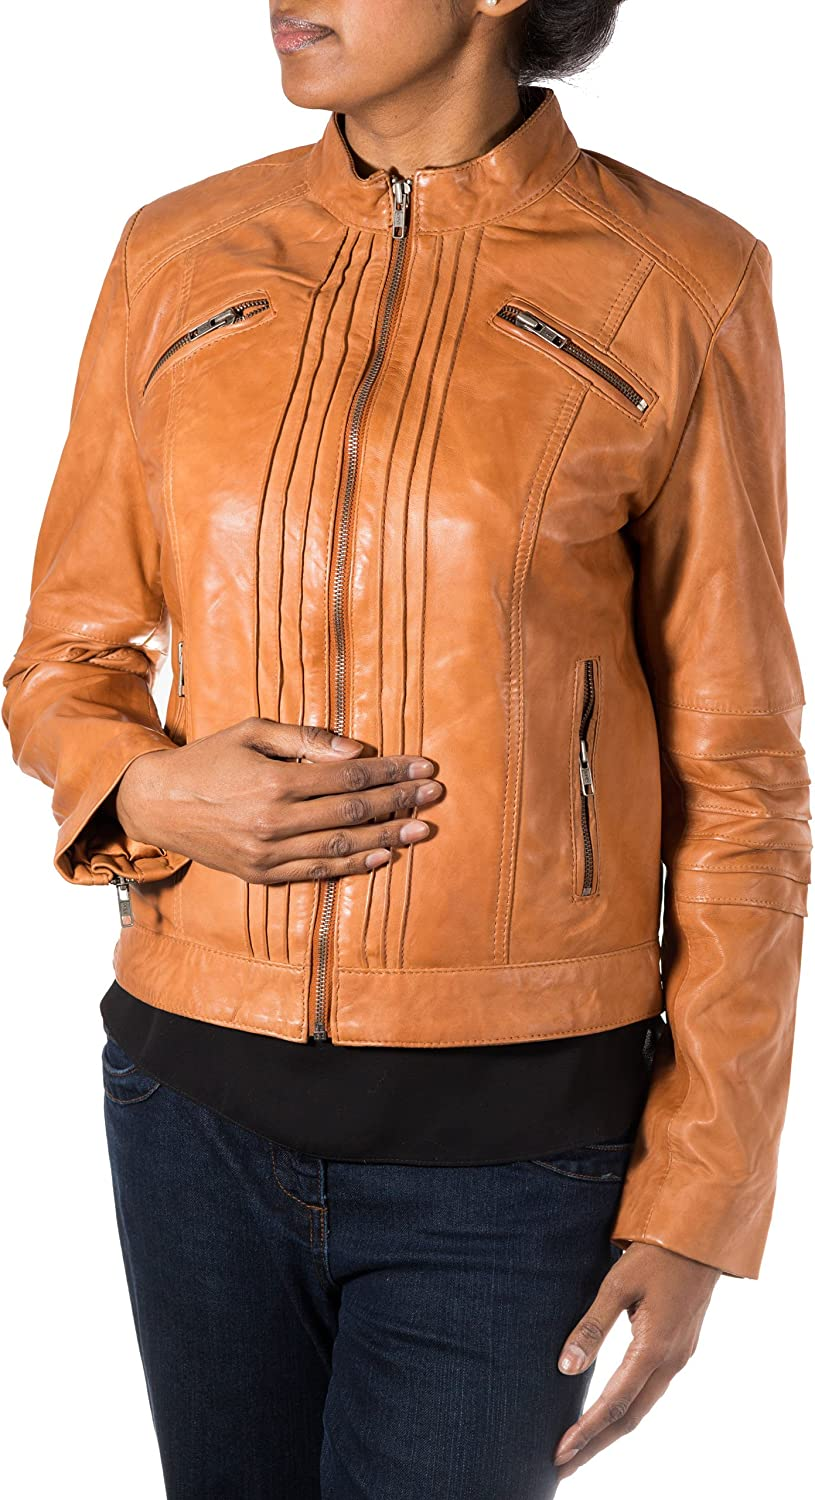 Womens Brown Tan Soft Leather Small Collar greenical Ribbed Design Biker Jacket